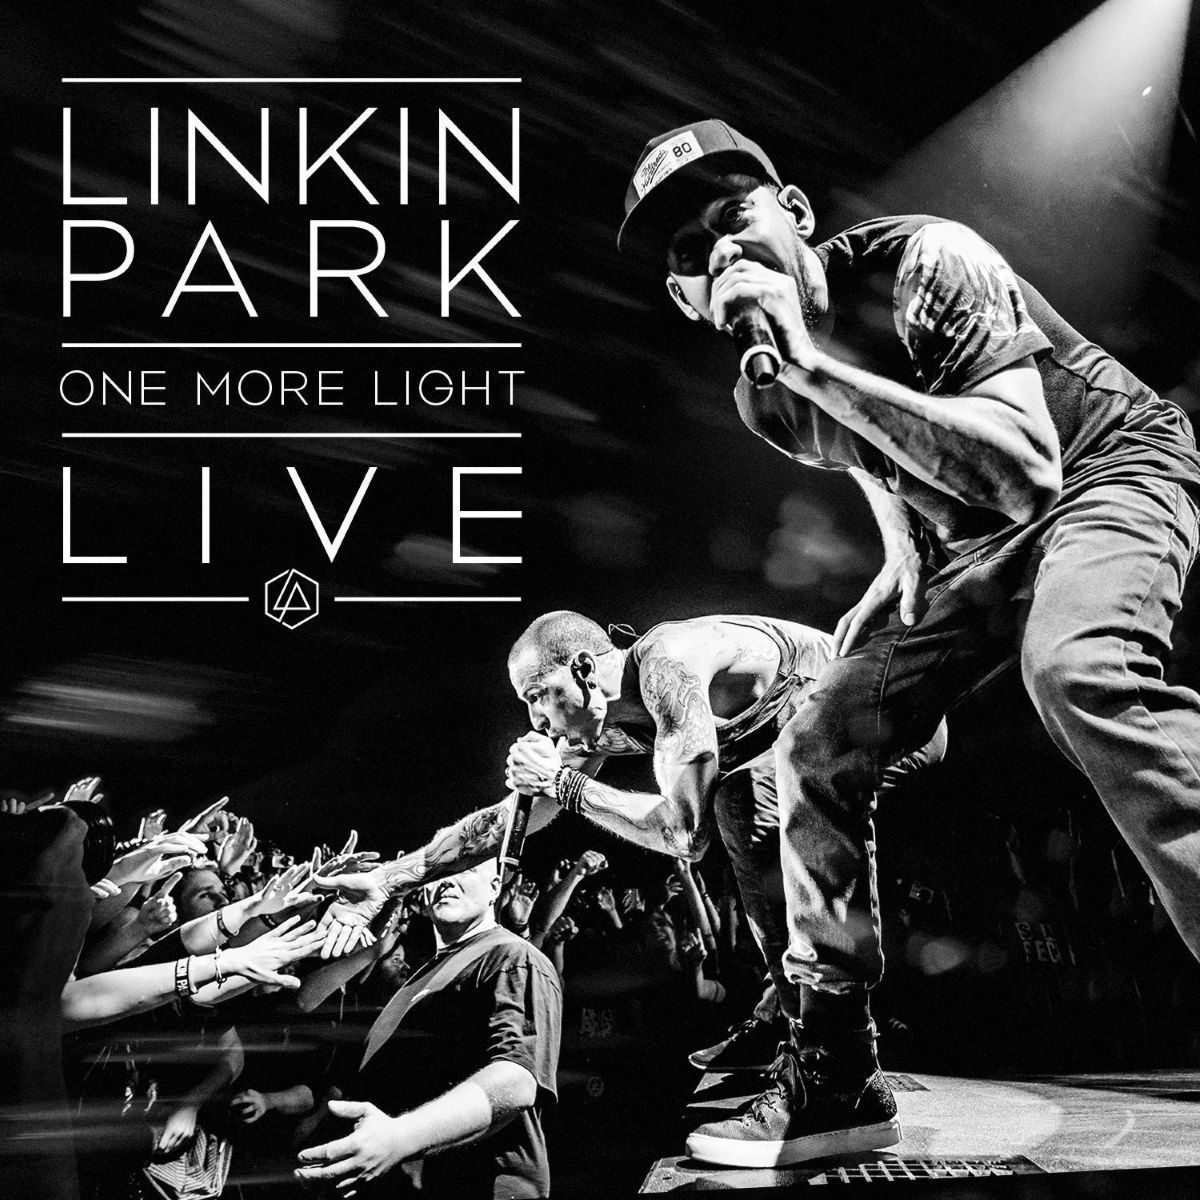 Linkin Park – One More Light Live (CD)